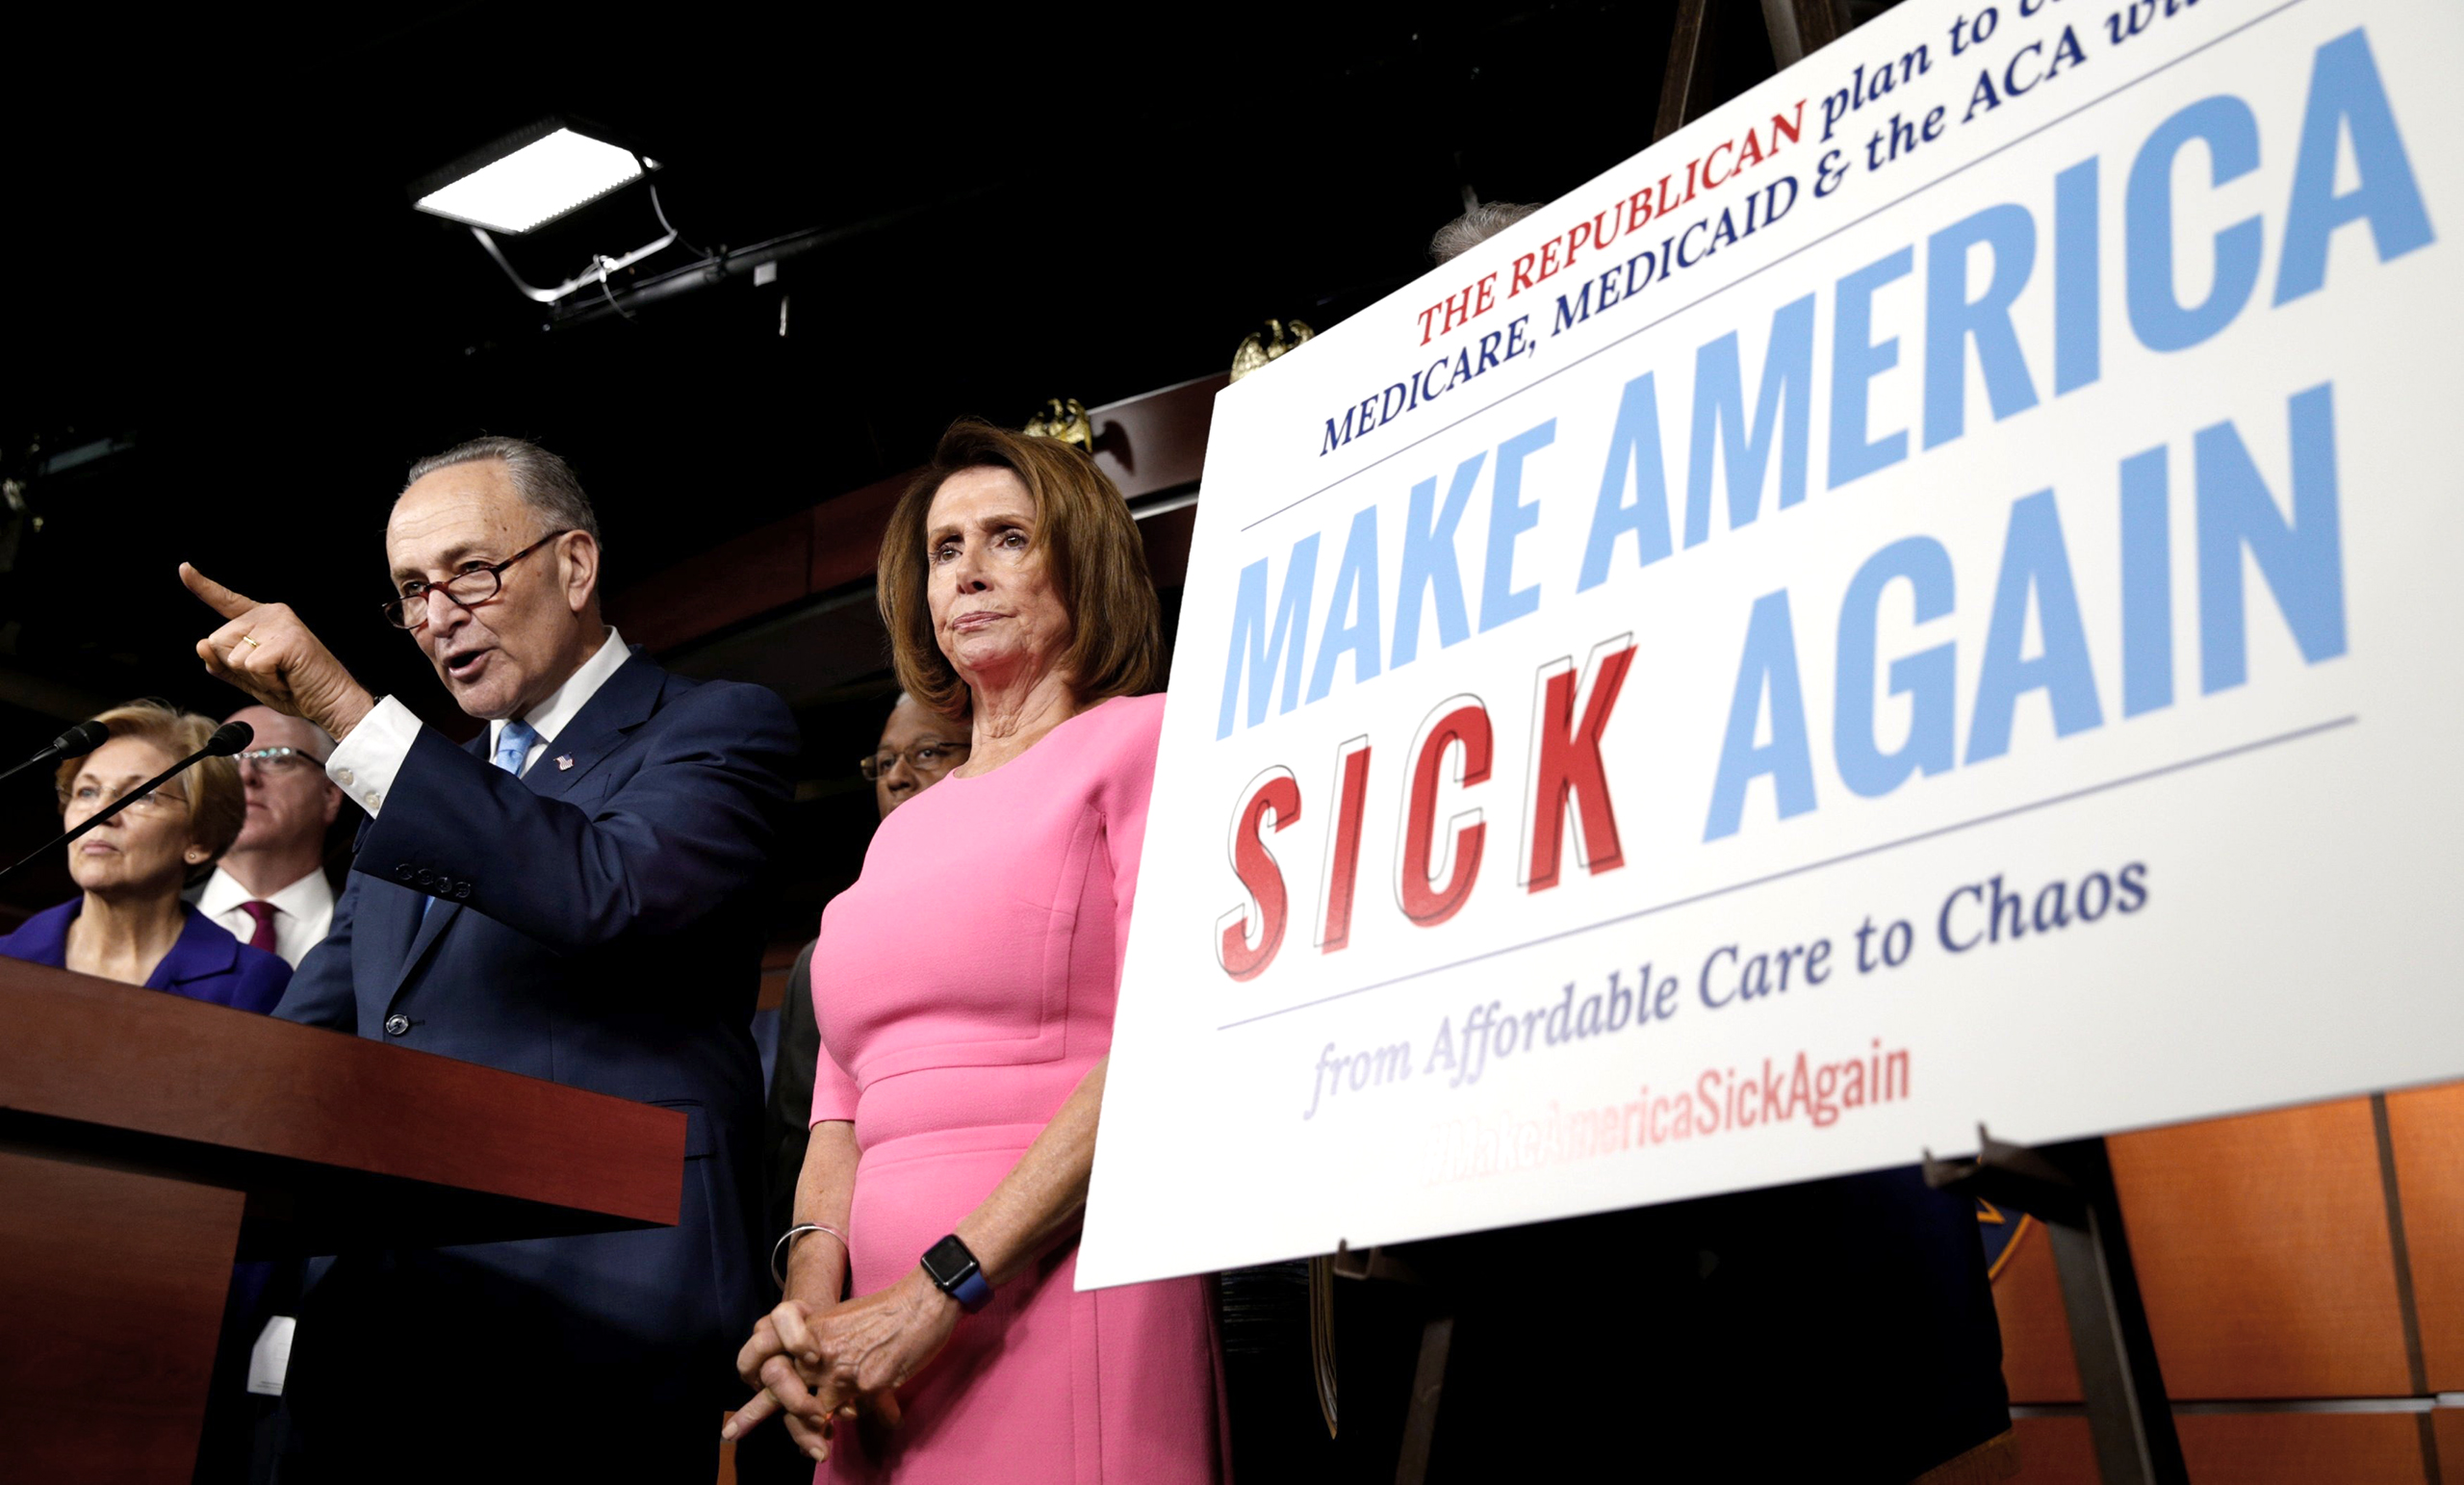 Democratic leaders Schumer and Pelosi warn on Jan. 4 that the GOP will regret repealing Obamacare